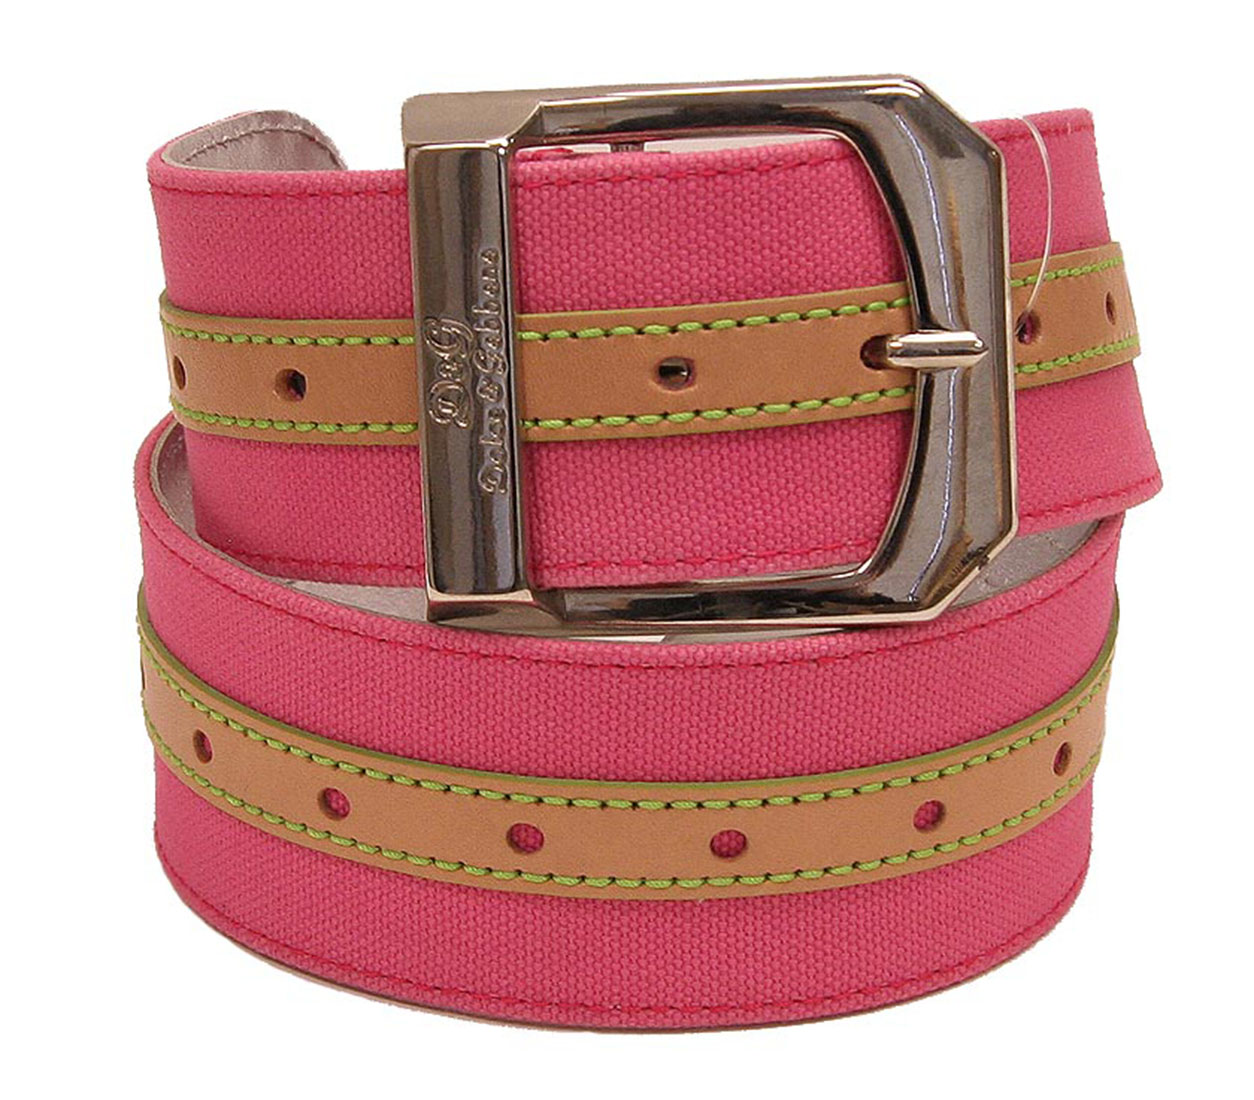 DG Womens Belt Pink Fucsia Leather